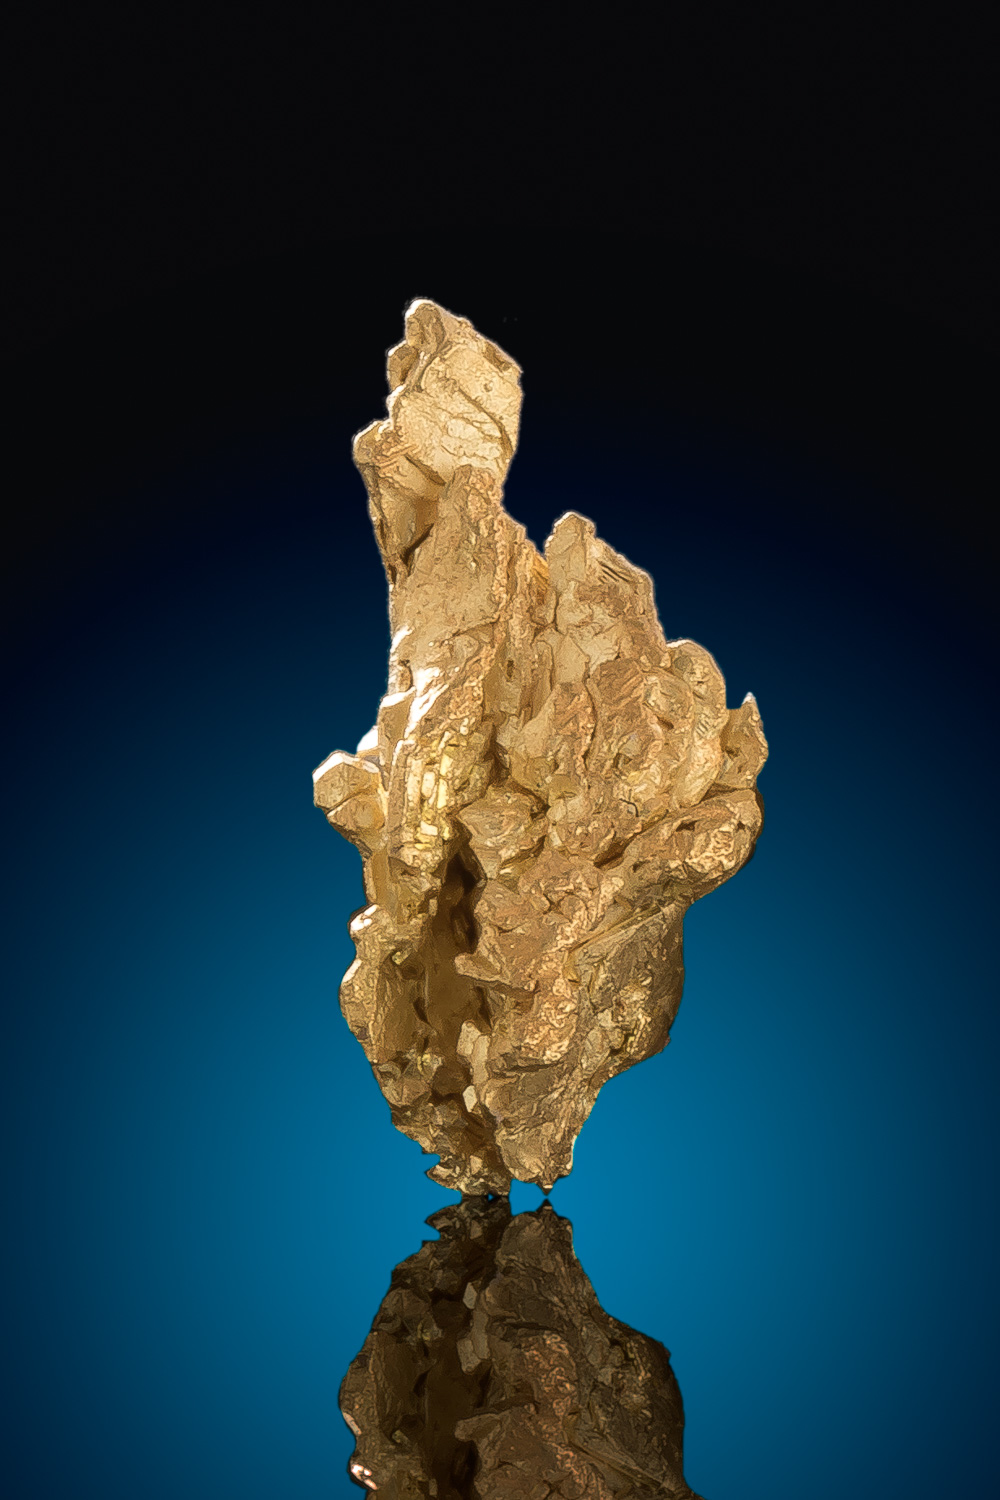 Natural Gold crystal Specimen from Mt. Kare